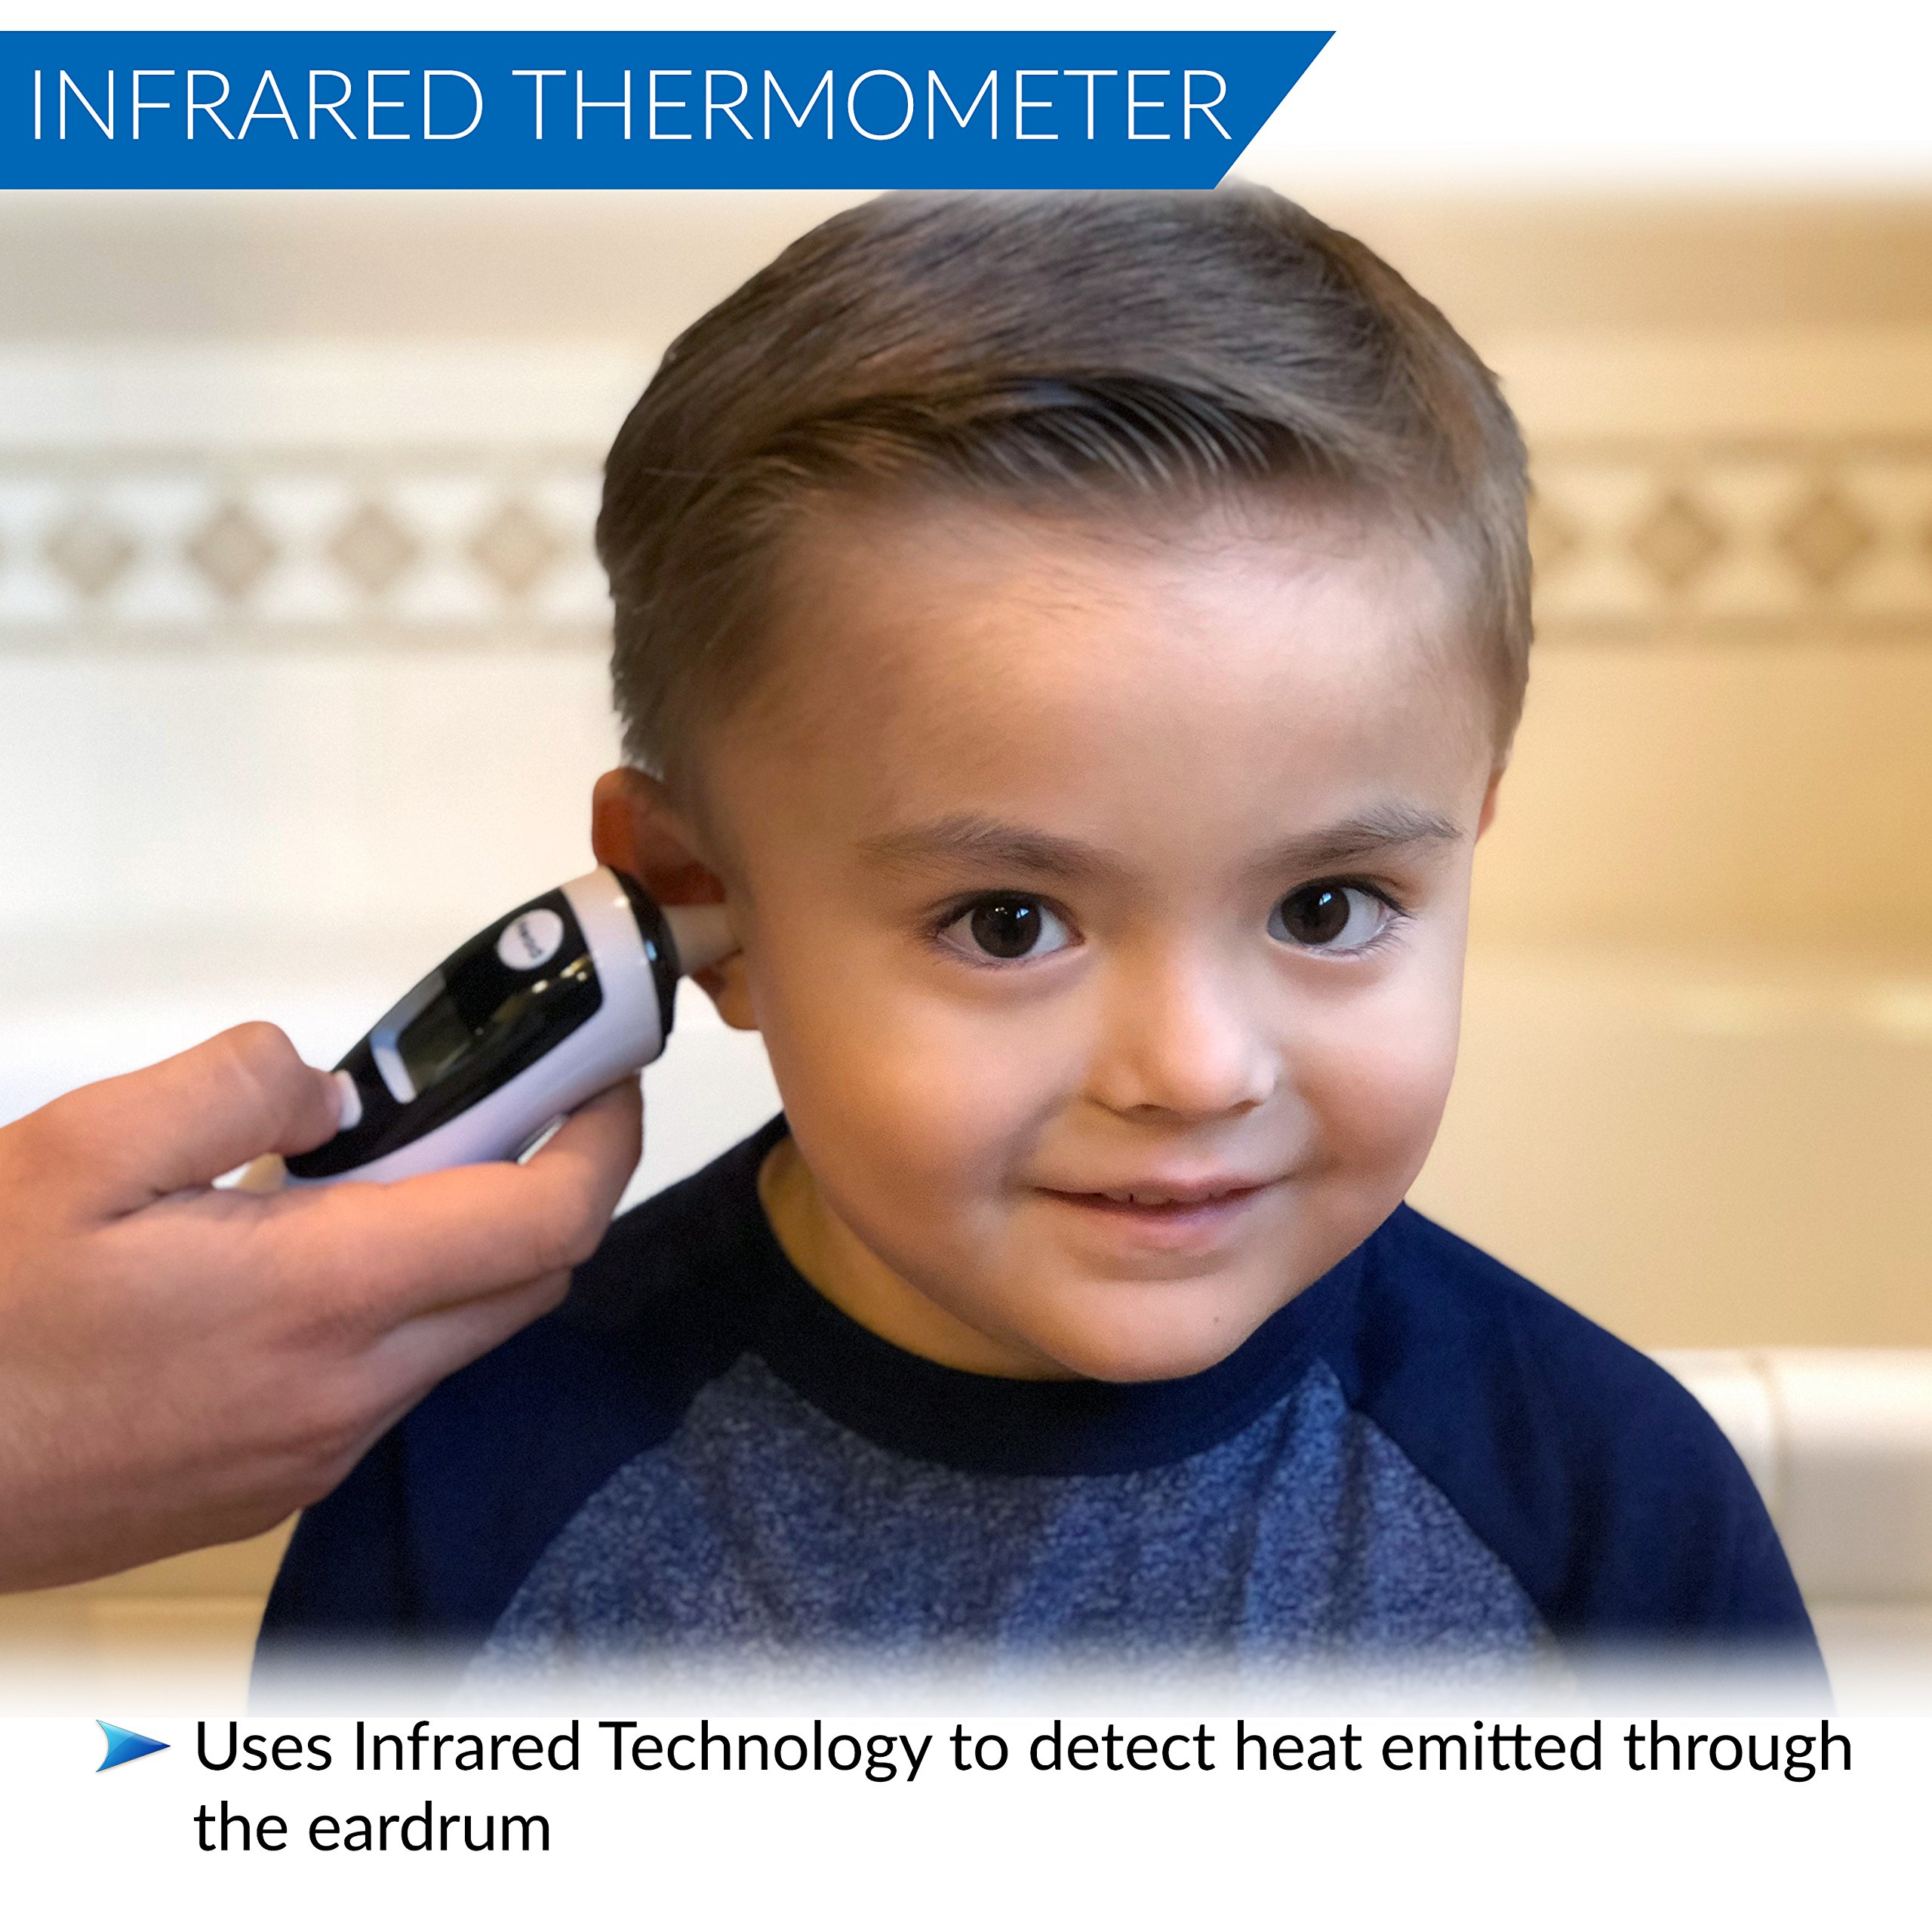 Champion IR - Medical Ear Thermometer With Forehead Function - Infared Technology & LCD Screen For Improved Accuracy by Champion IR (Image #5)